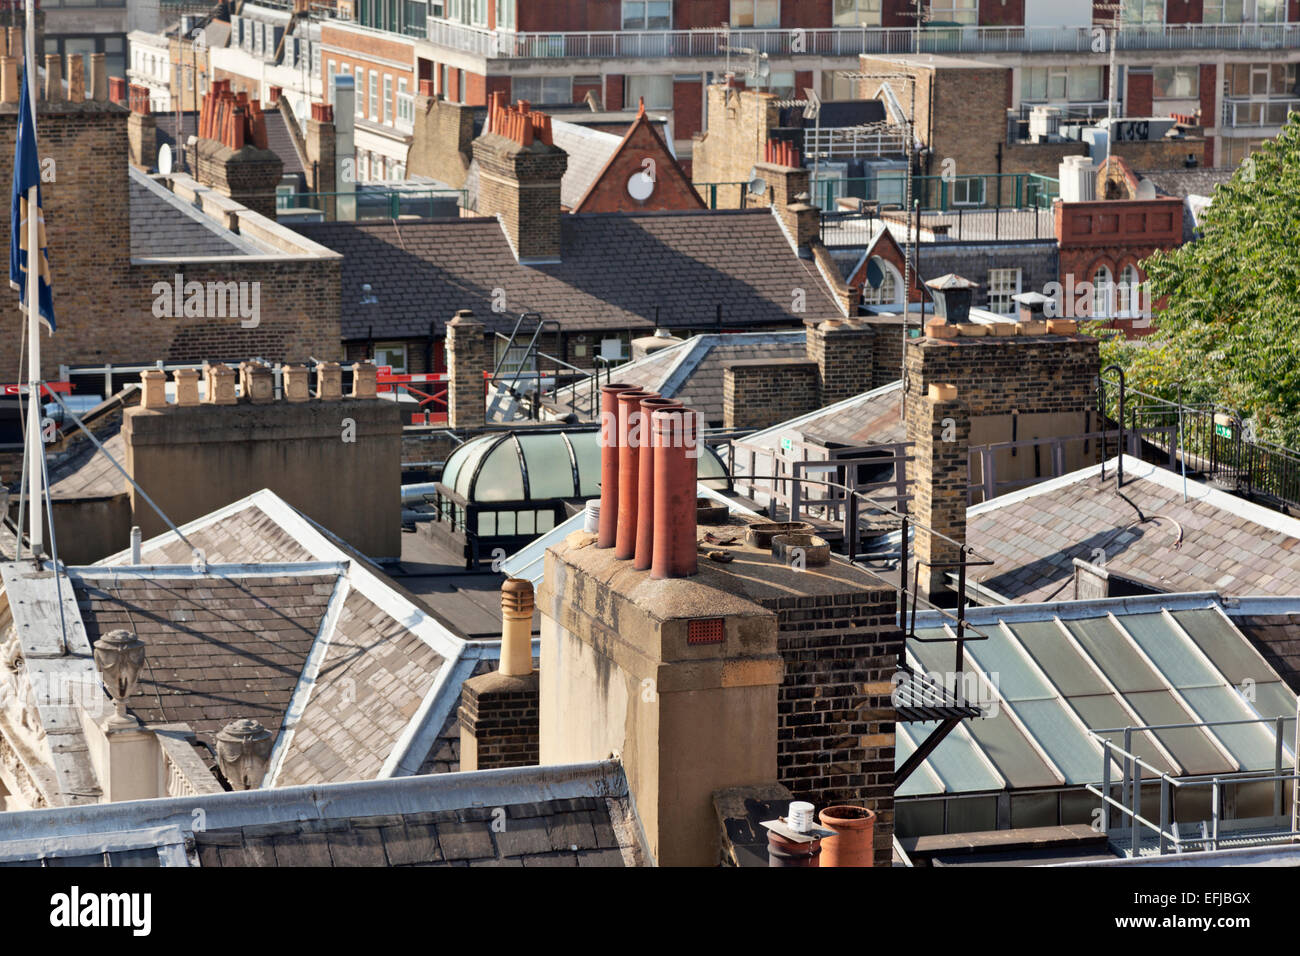 London Roofs - Stock Image